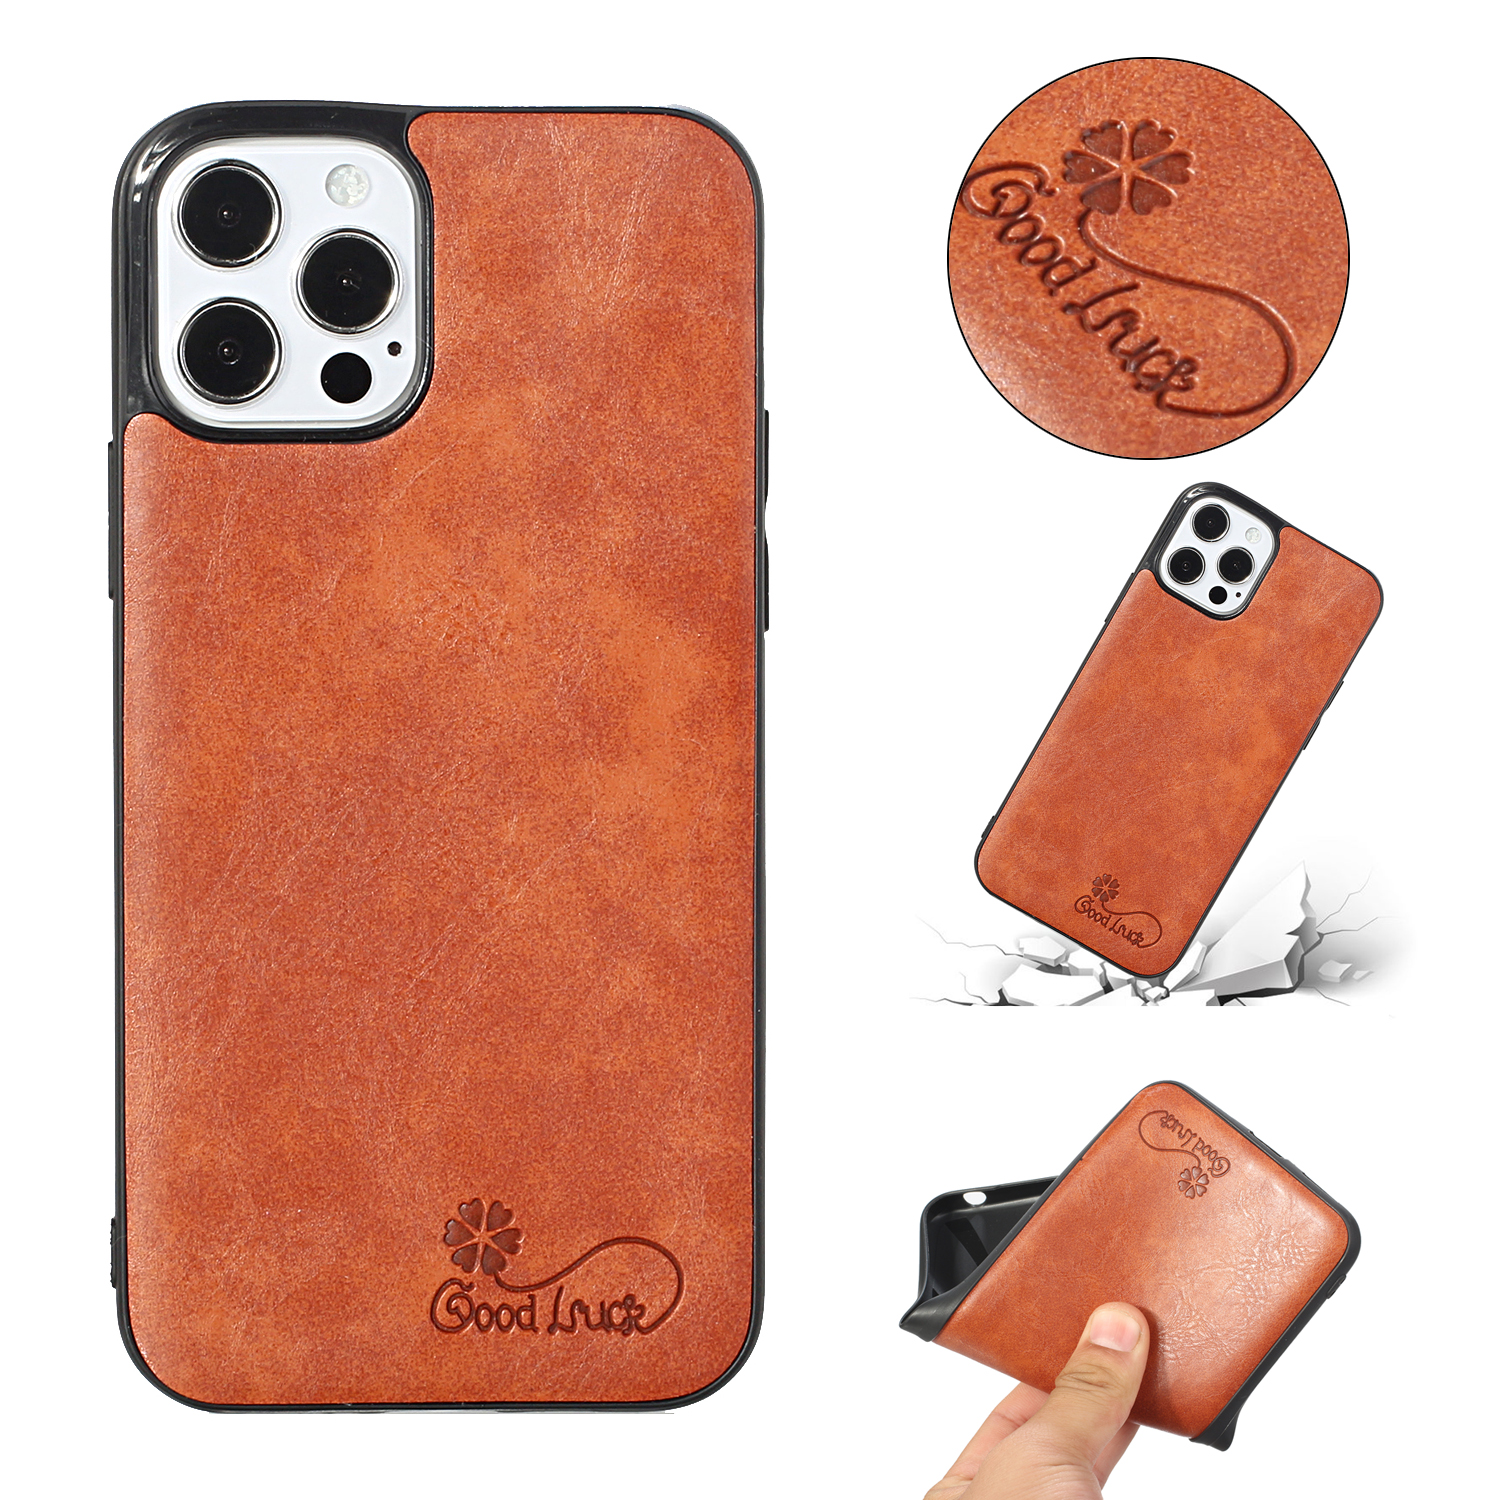 For Iphone 11 Pro Max Mobile Phone Cover Pu Waxed Leather Protective Case Light brown